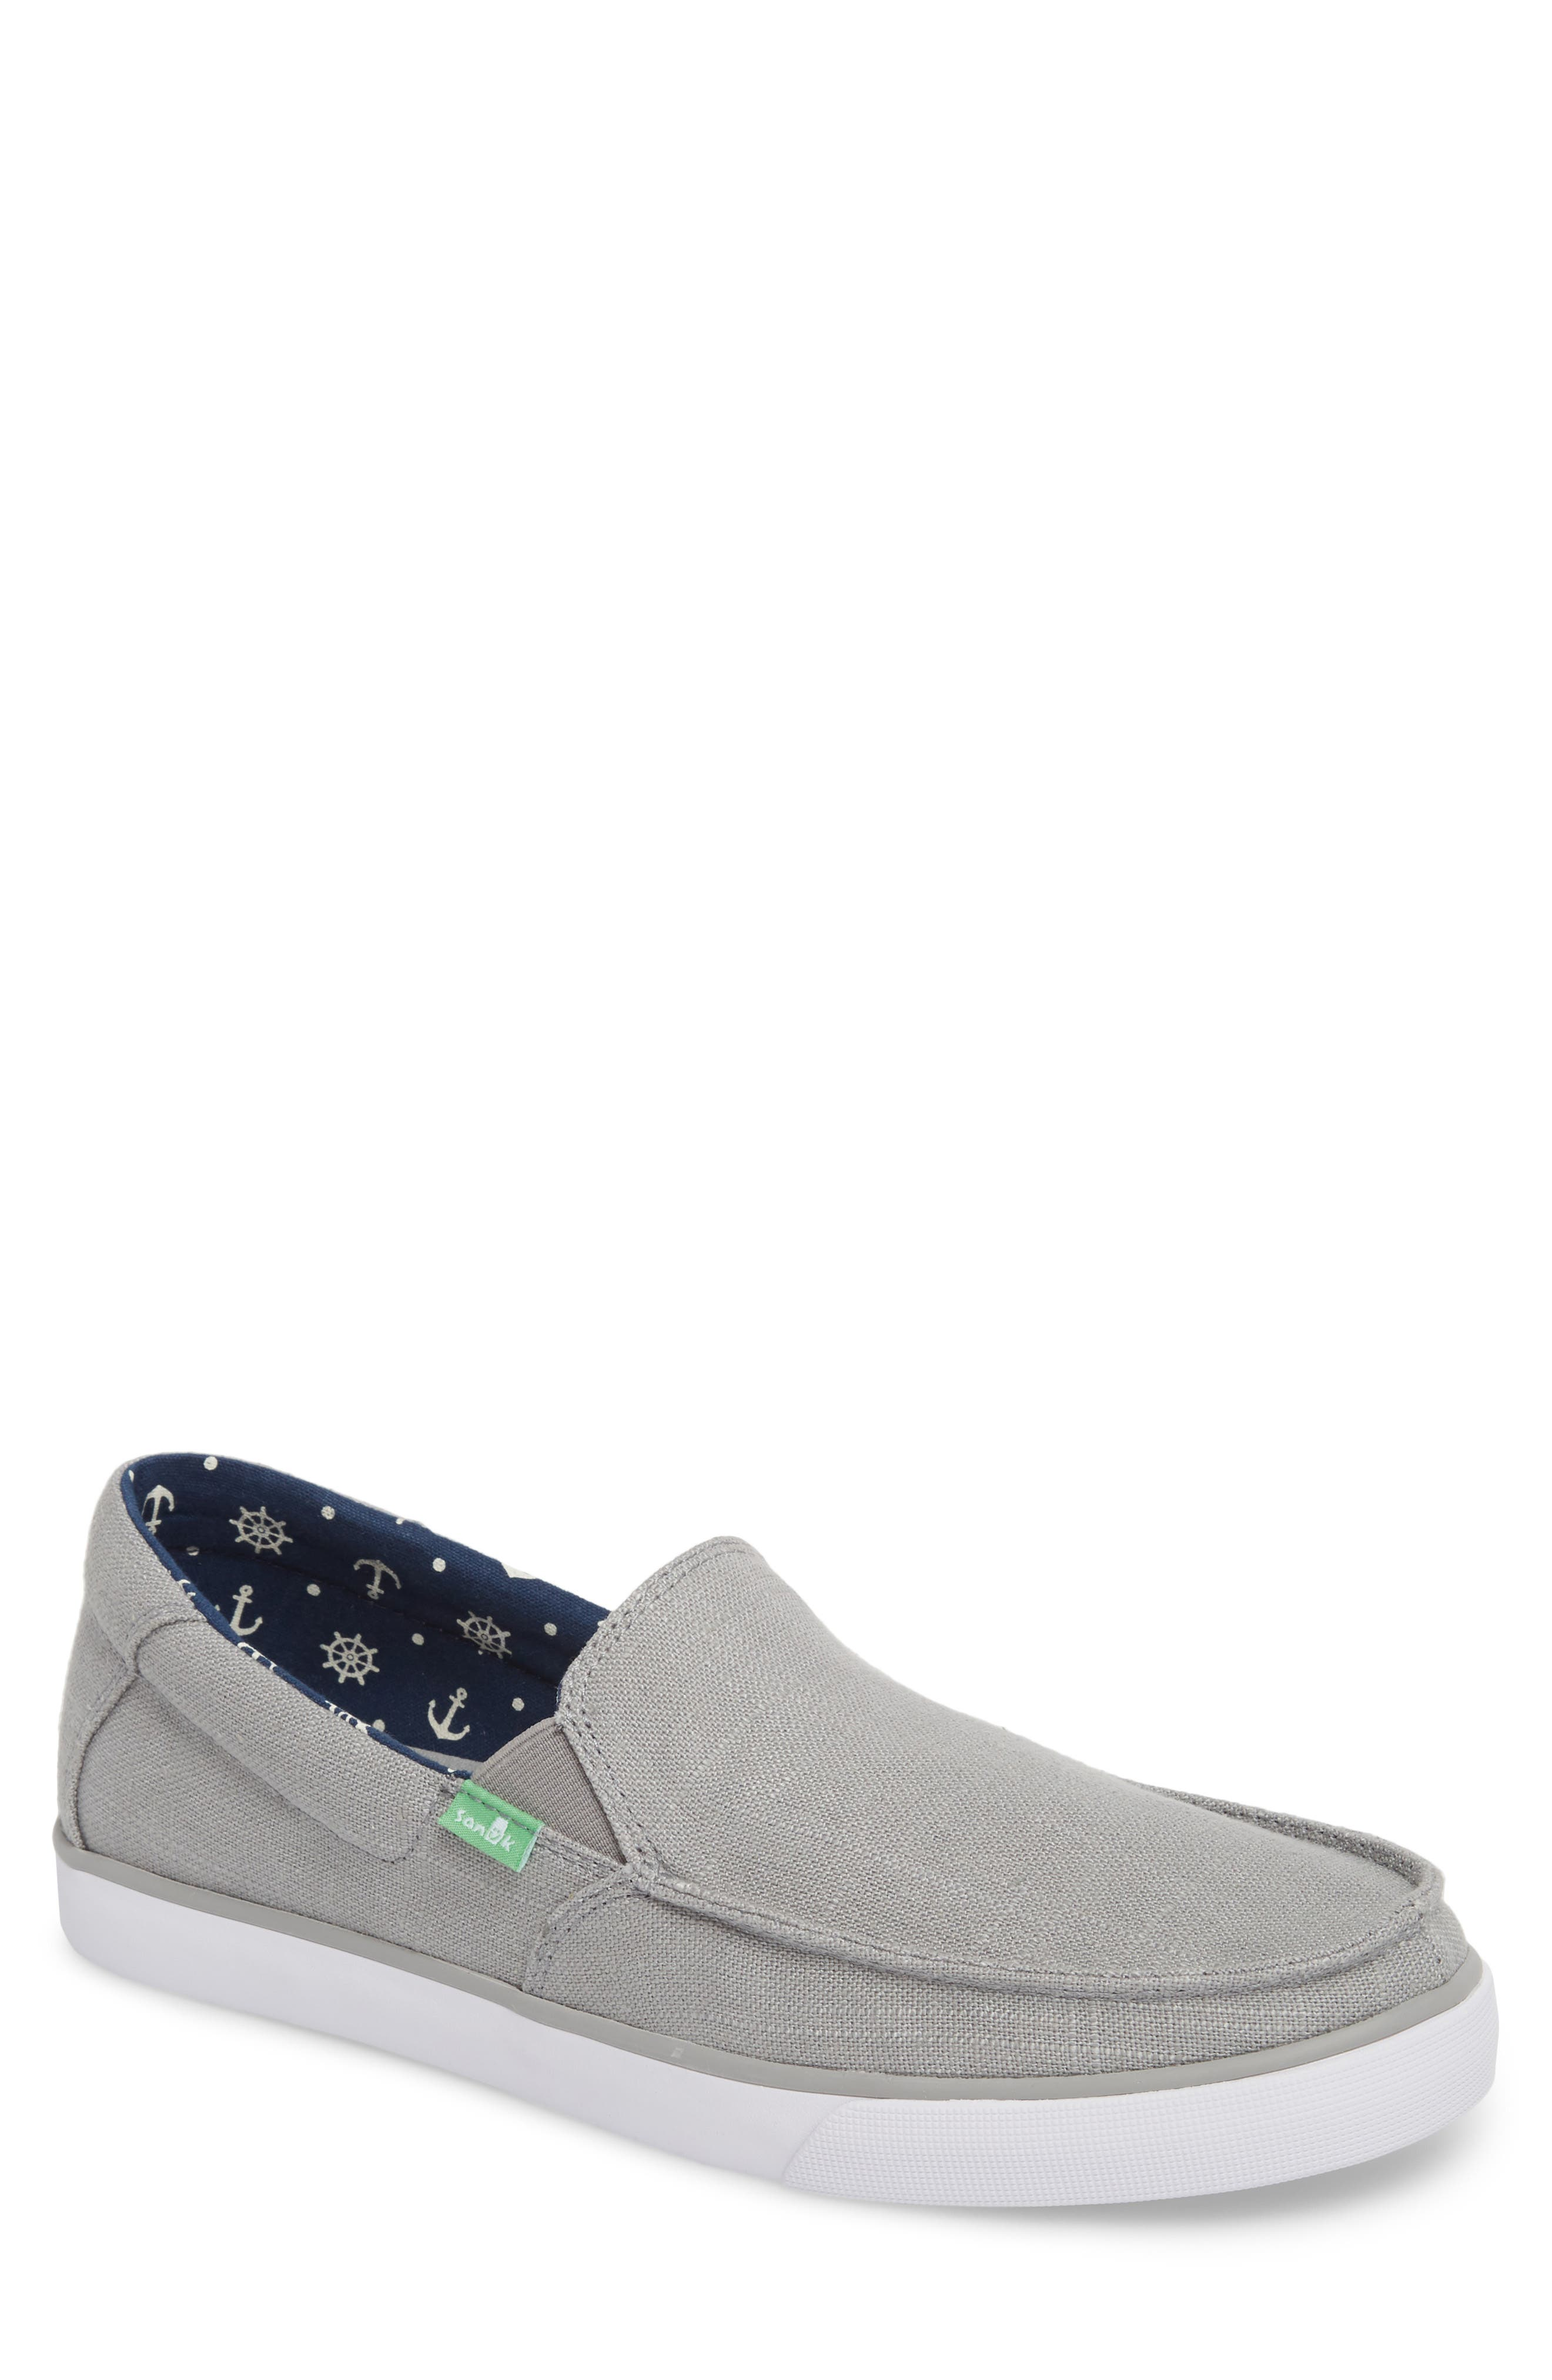 Sideline Linen Slip-On,                         Main,                         color, Grey